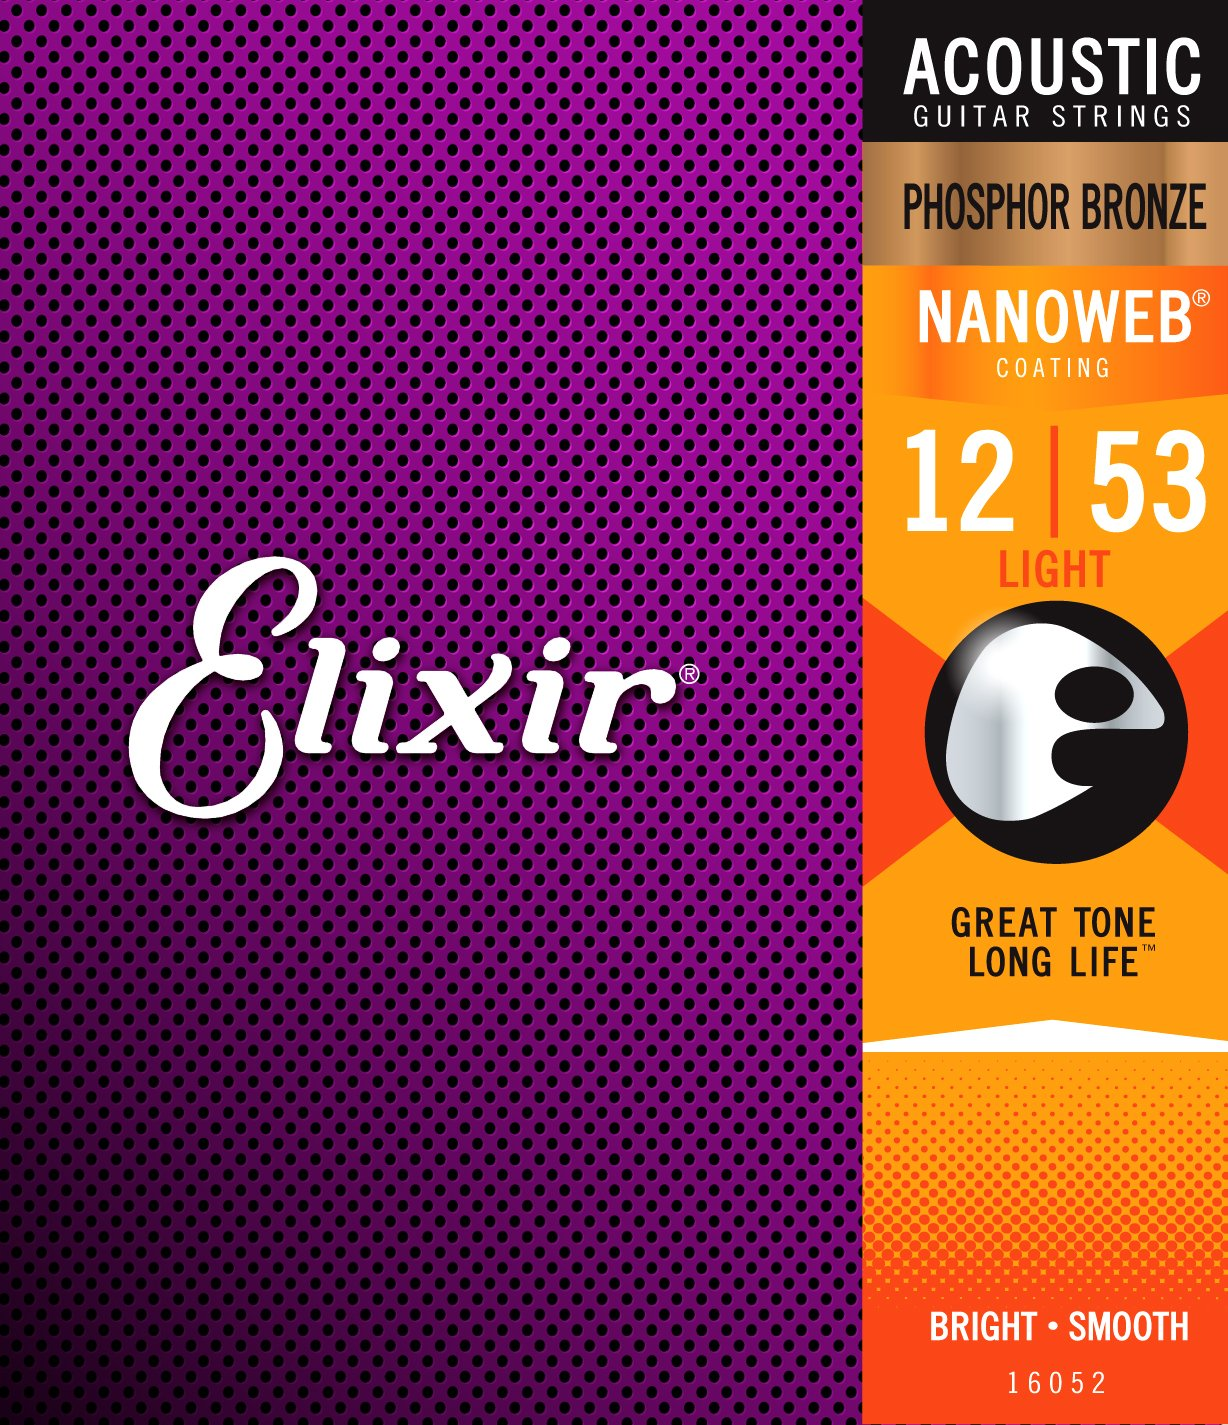 Elixir Strings Phosphor Bronze Acoustic Guitar Strings W Nanoweb Coating, Light (.012 .053) by Elixir